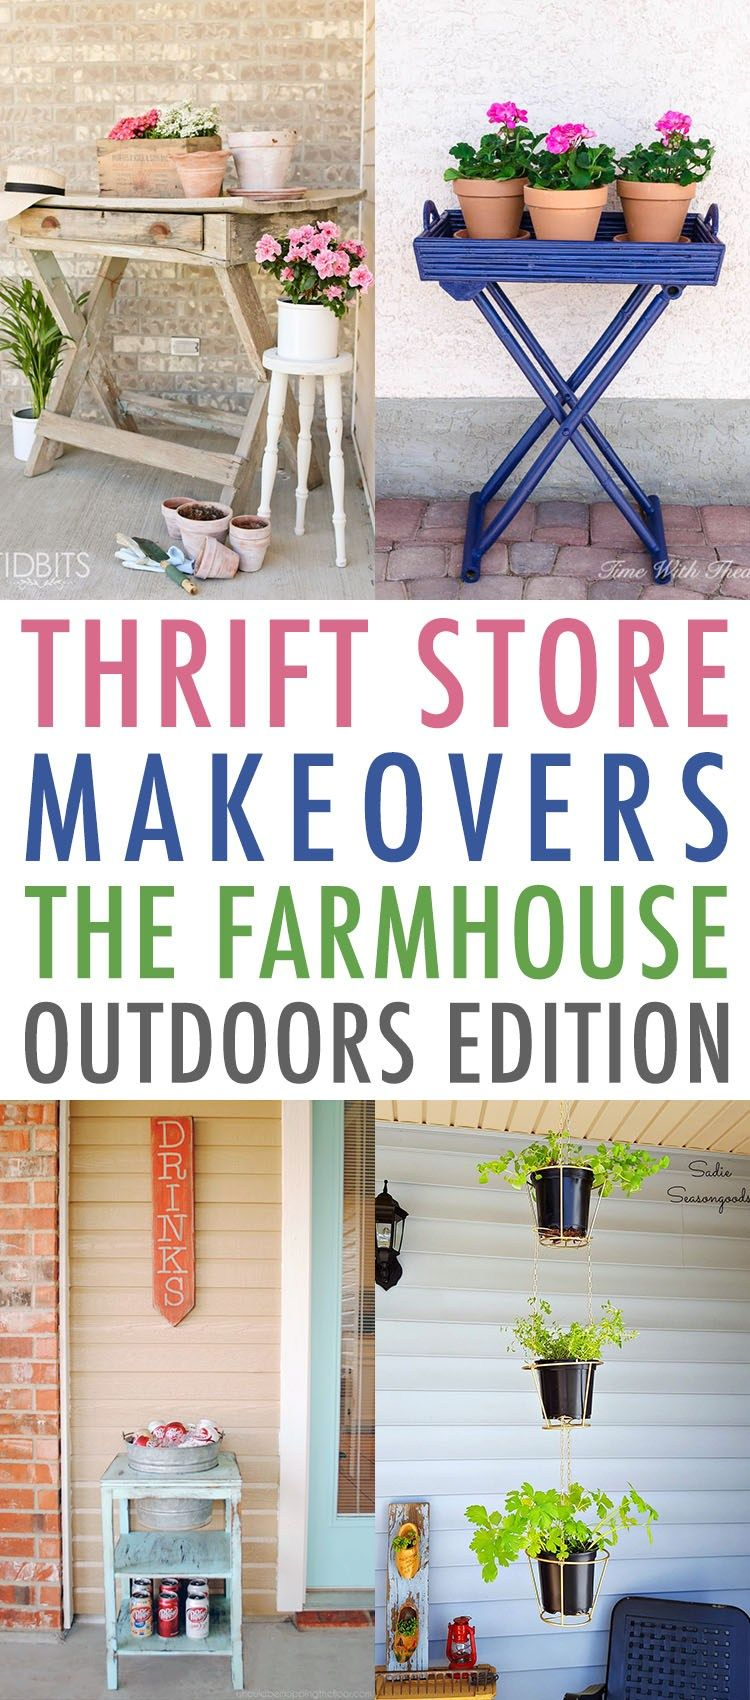 Thrift Store Makeovers The Farmhouse Outdoors Edition - The Cottage Market